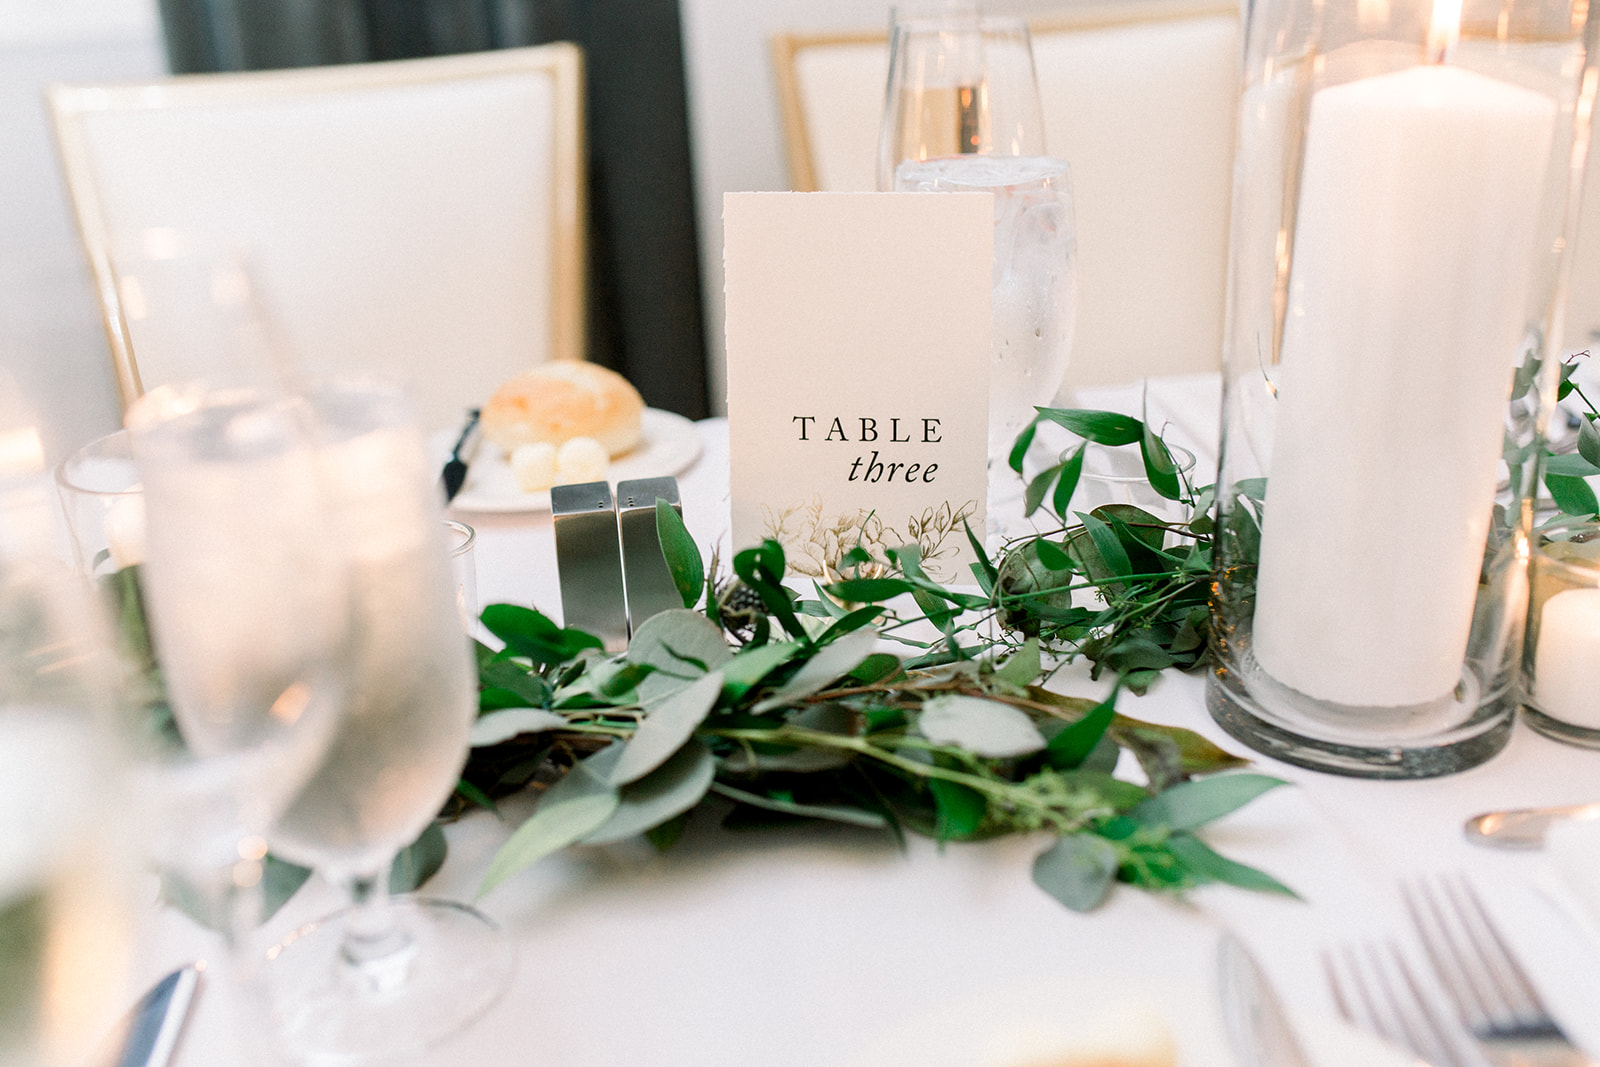 Wedding centerpieces with greenery and organic paper table numbers for Pittsburgh wedding held at Hotel Monaco. See more beautiful details of this simple, yet stunning wedding at exhale-events.com!